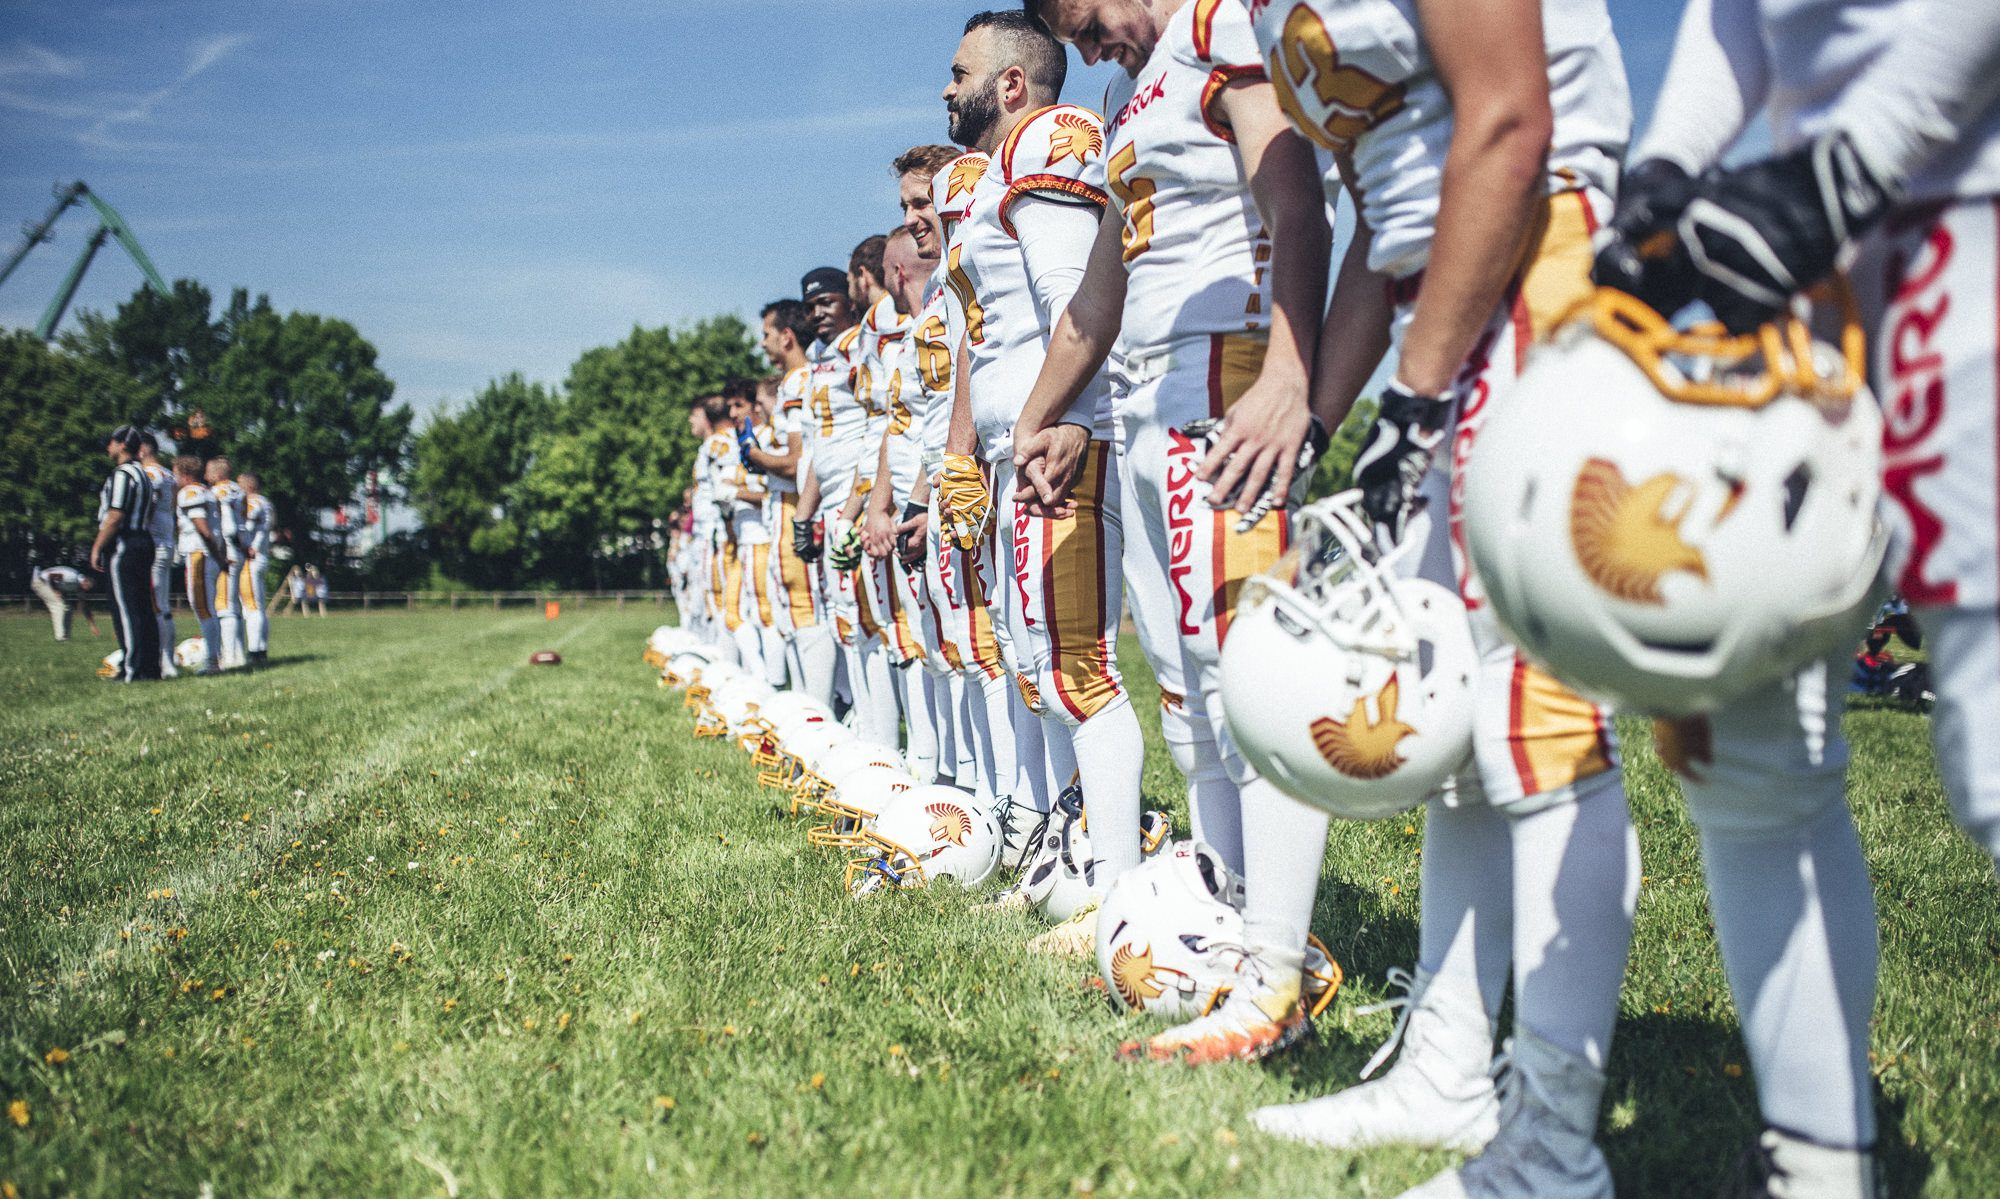 Gernsheim Gladiators